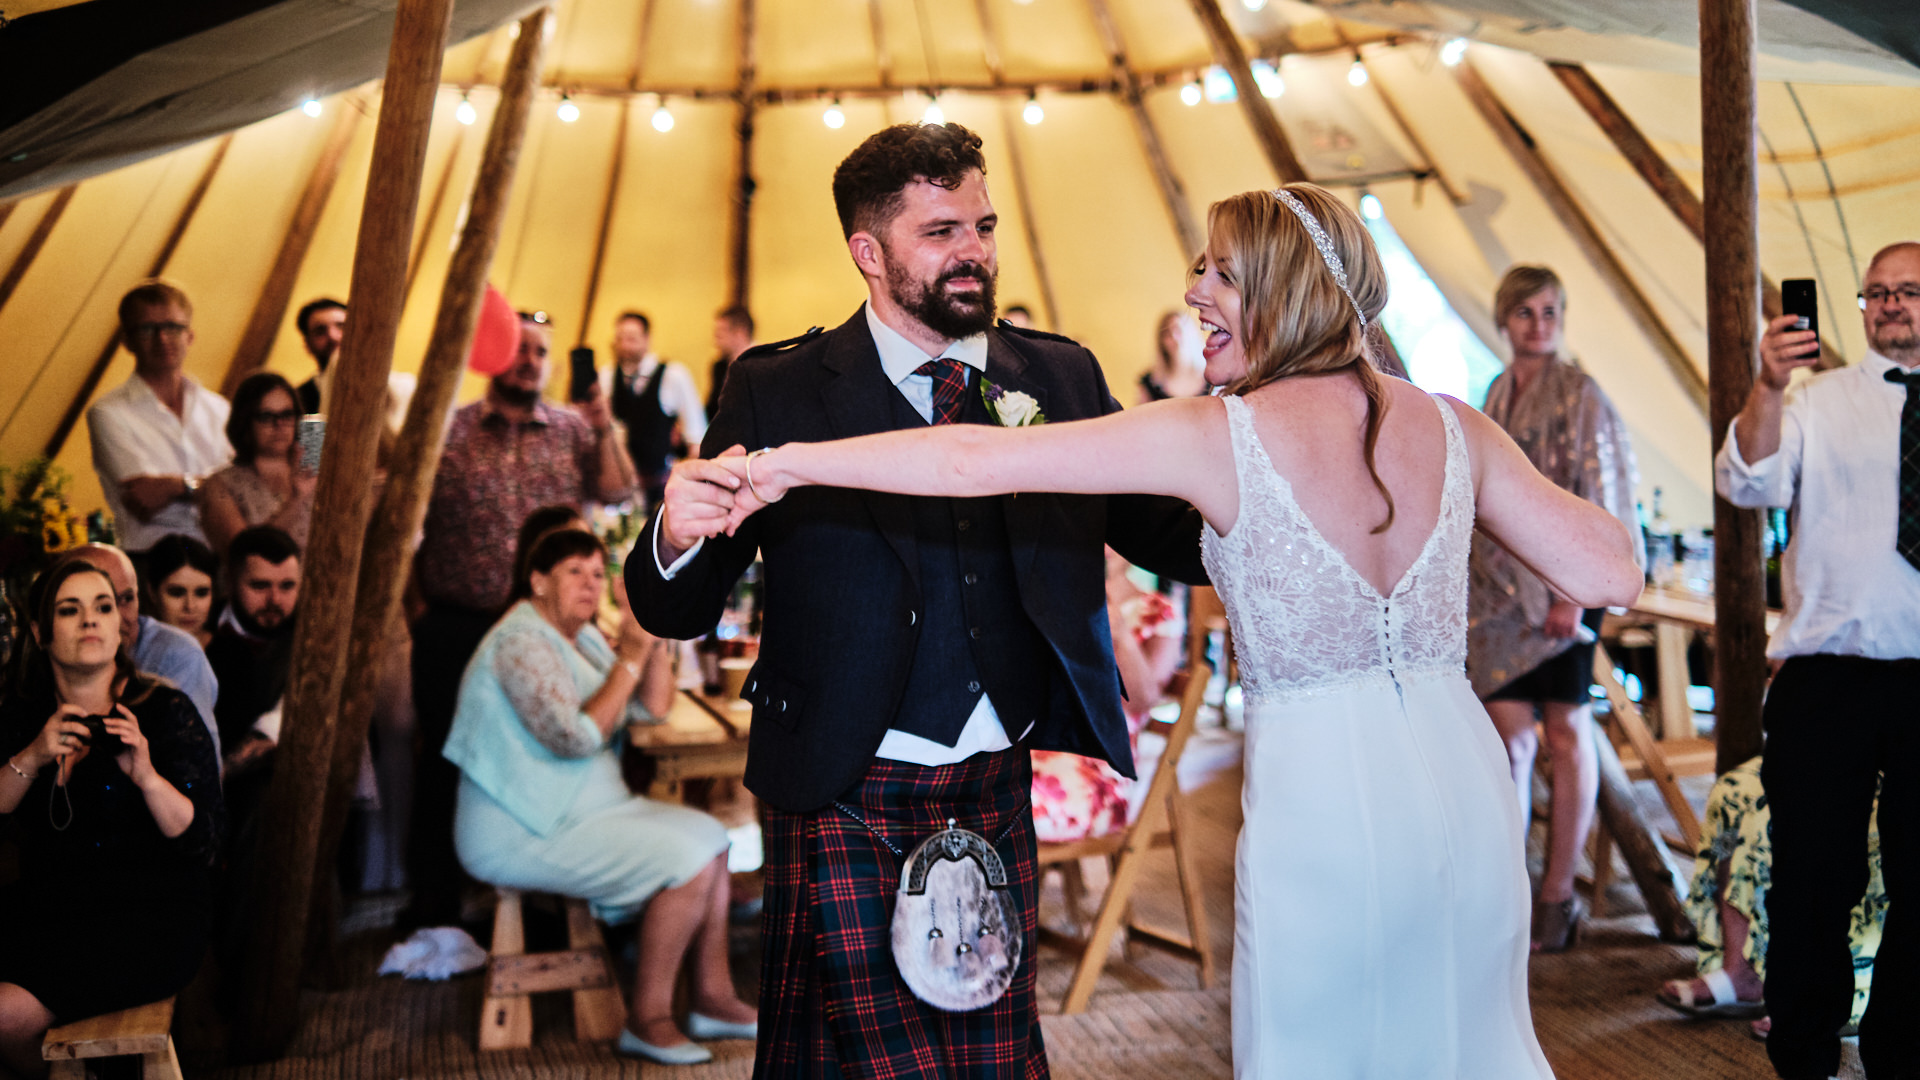 colour photograph of the bride and groom during their first dance at their wedding